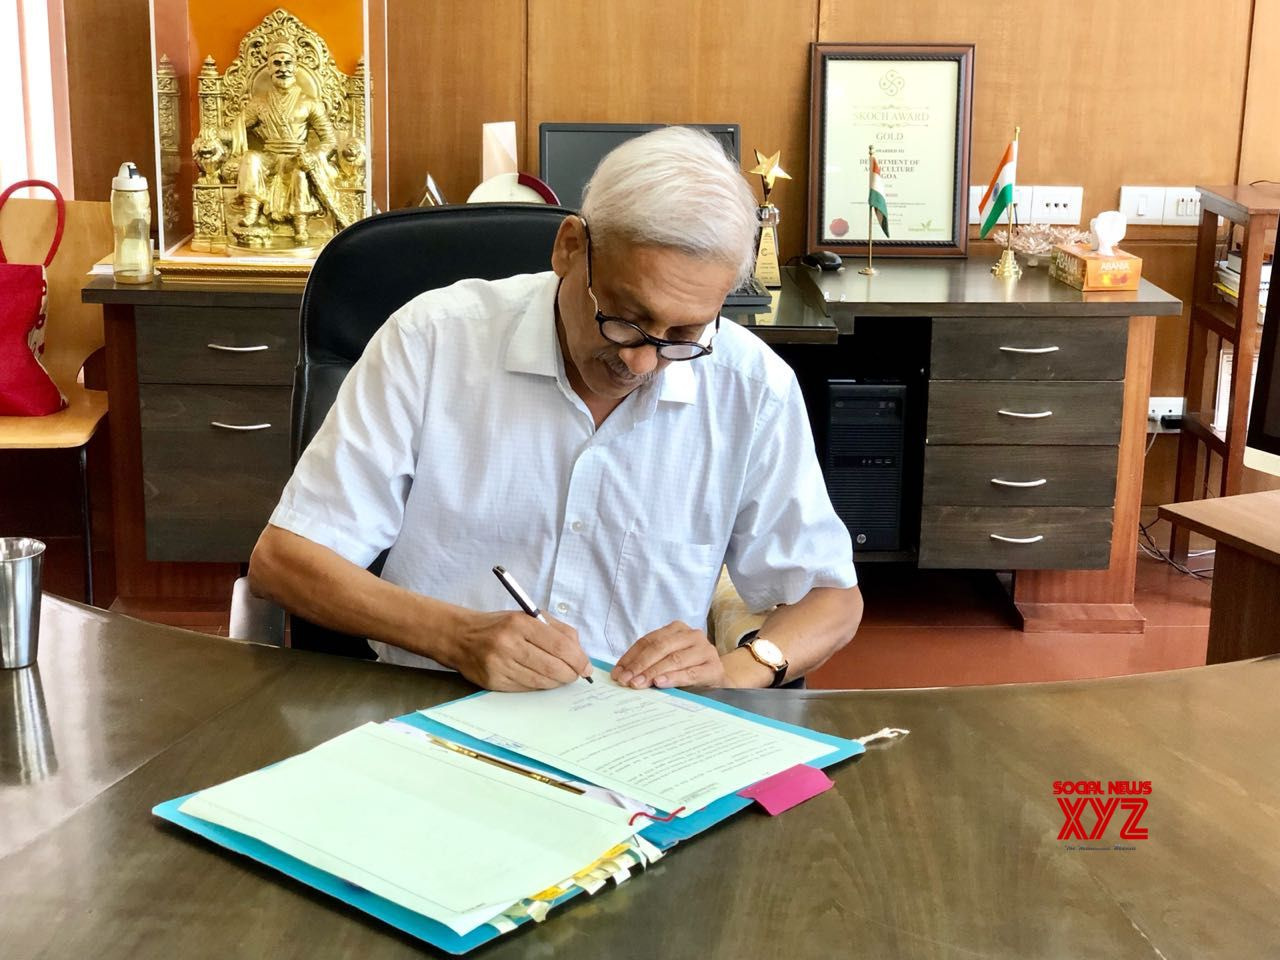 Panaji: Goa Chief Minister Manohar Parrikar resumes work at his office in Panaji, on June 15, 2018. He returned to Goa after being treated in a New York hospital for advanced pancreatic cancer for nearly three months.. (Photo: IANS)